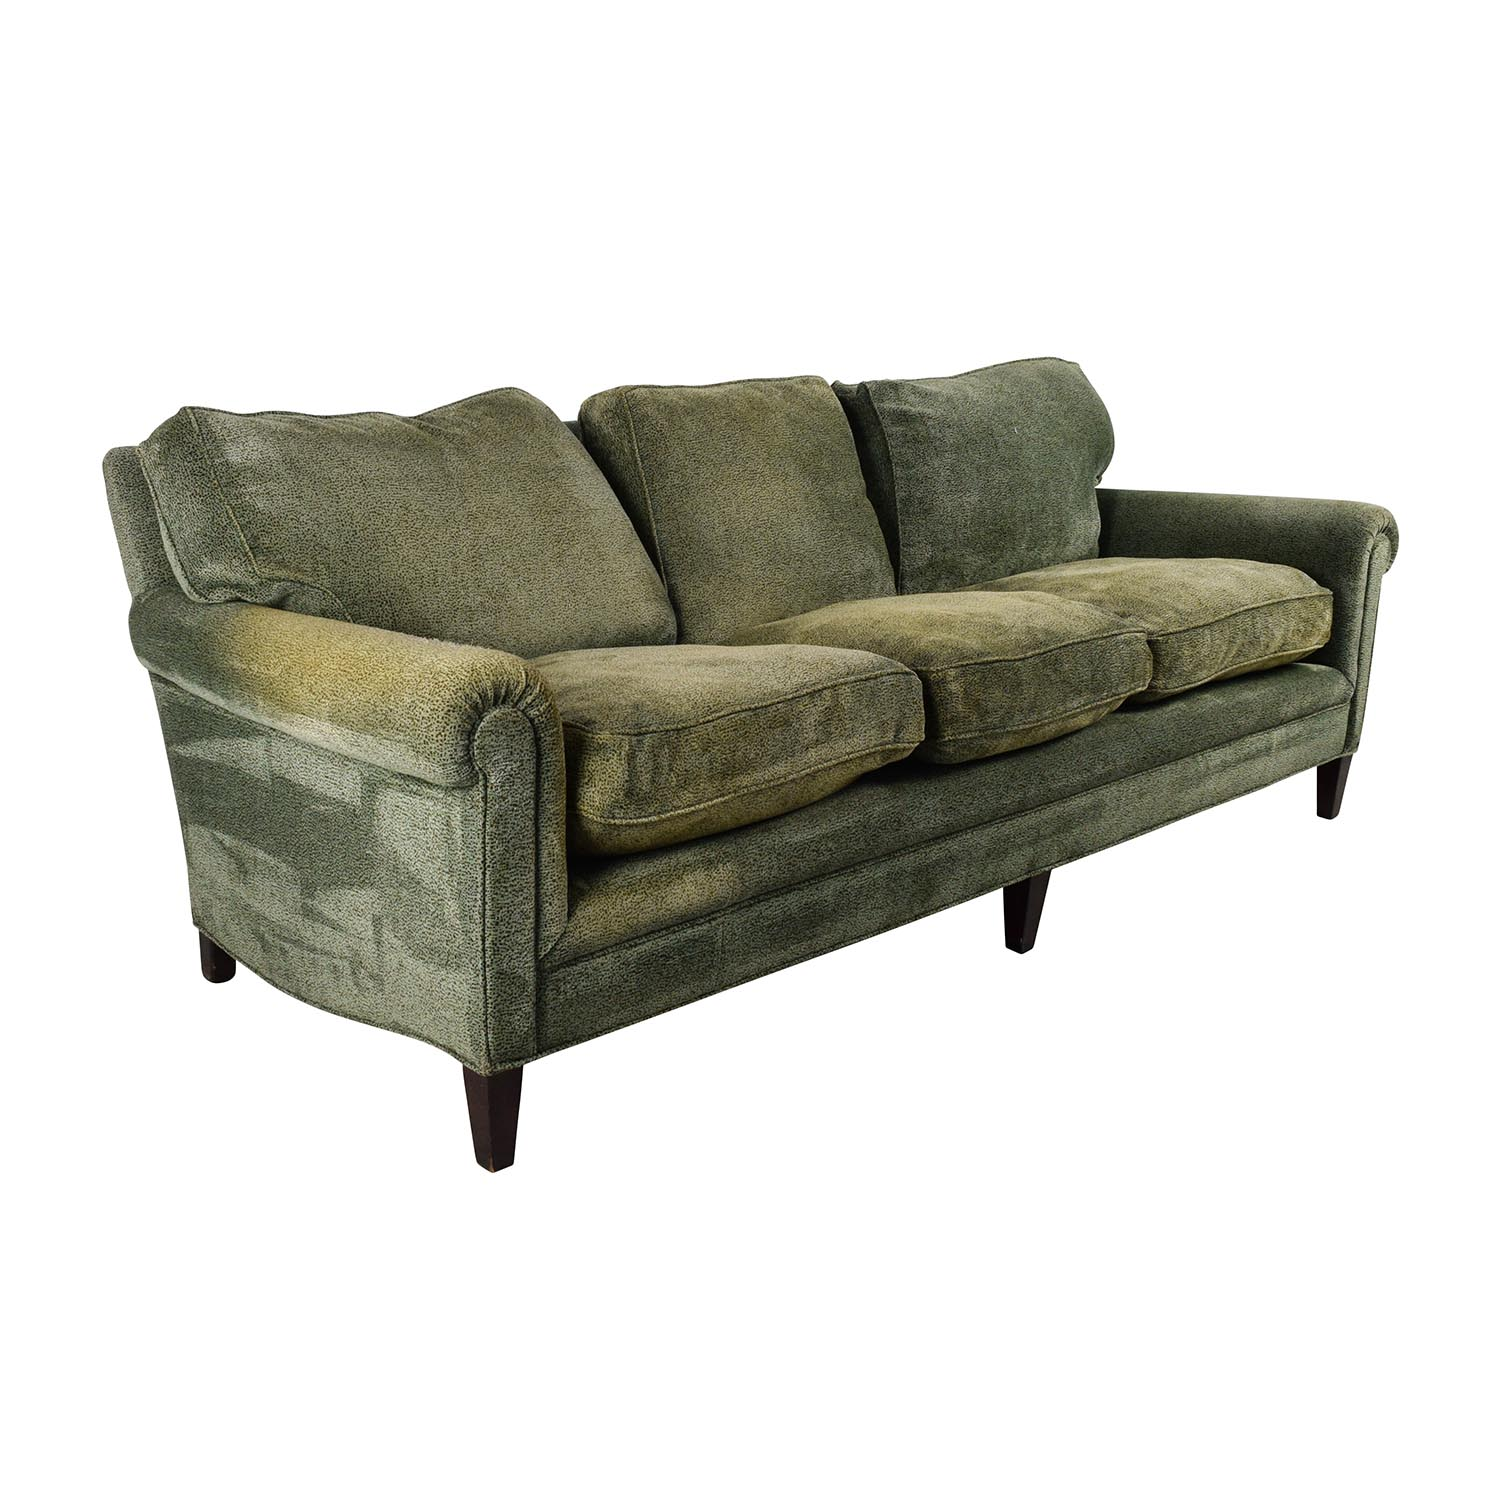 ... George Smith George Smith Classic English Style Sofa On Sale ...